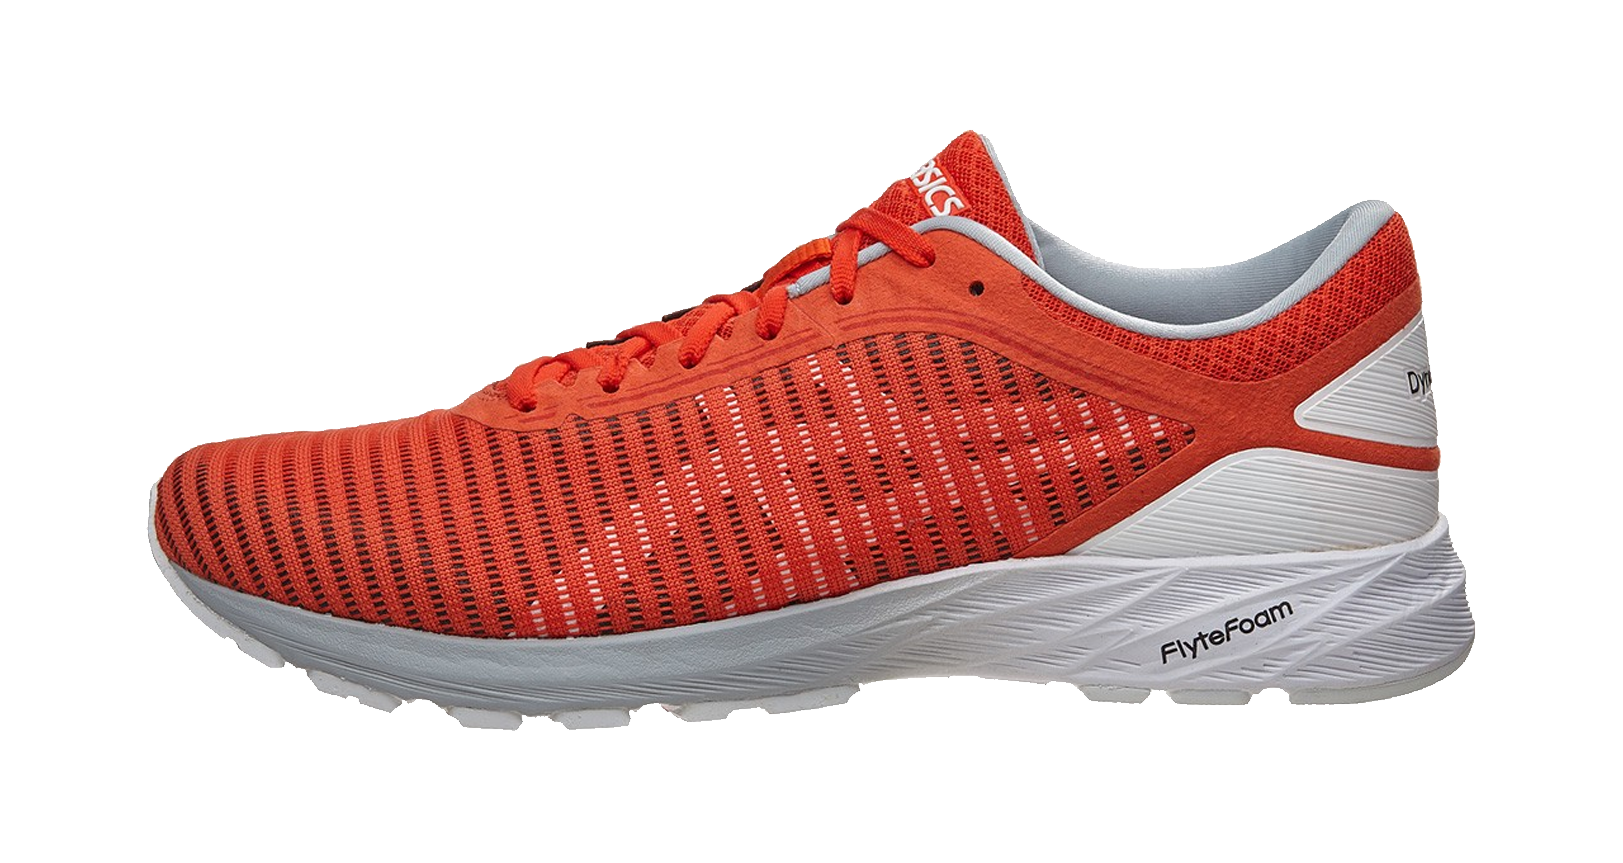 Altra One   Running Shoe Review